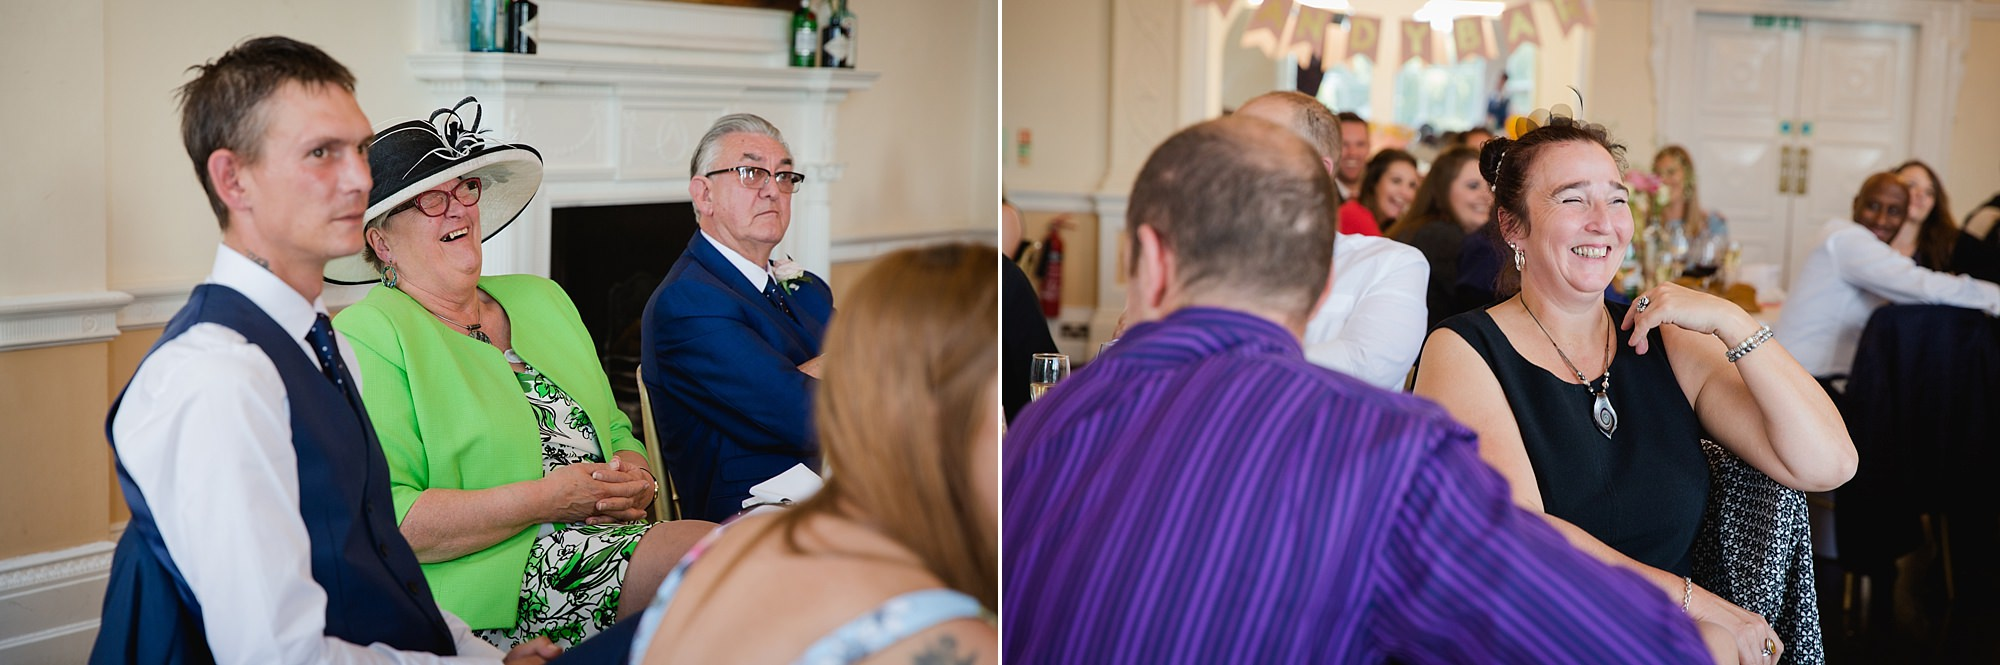 Trafalgar Tavern wedding guest reactions at groom's speech